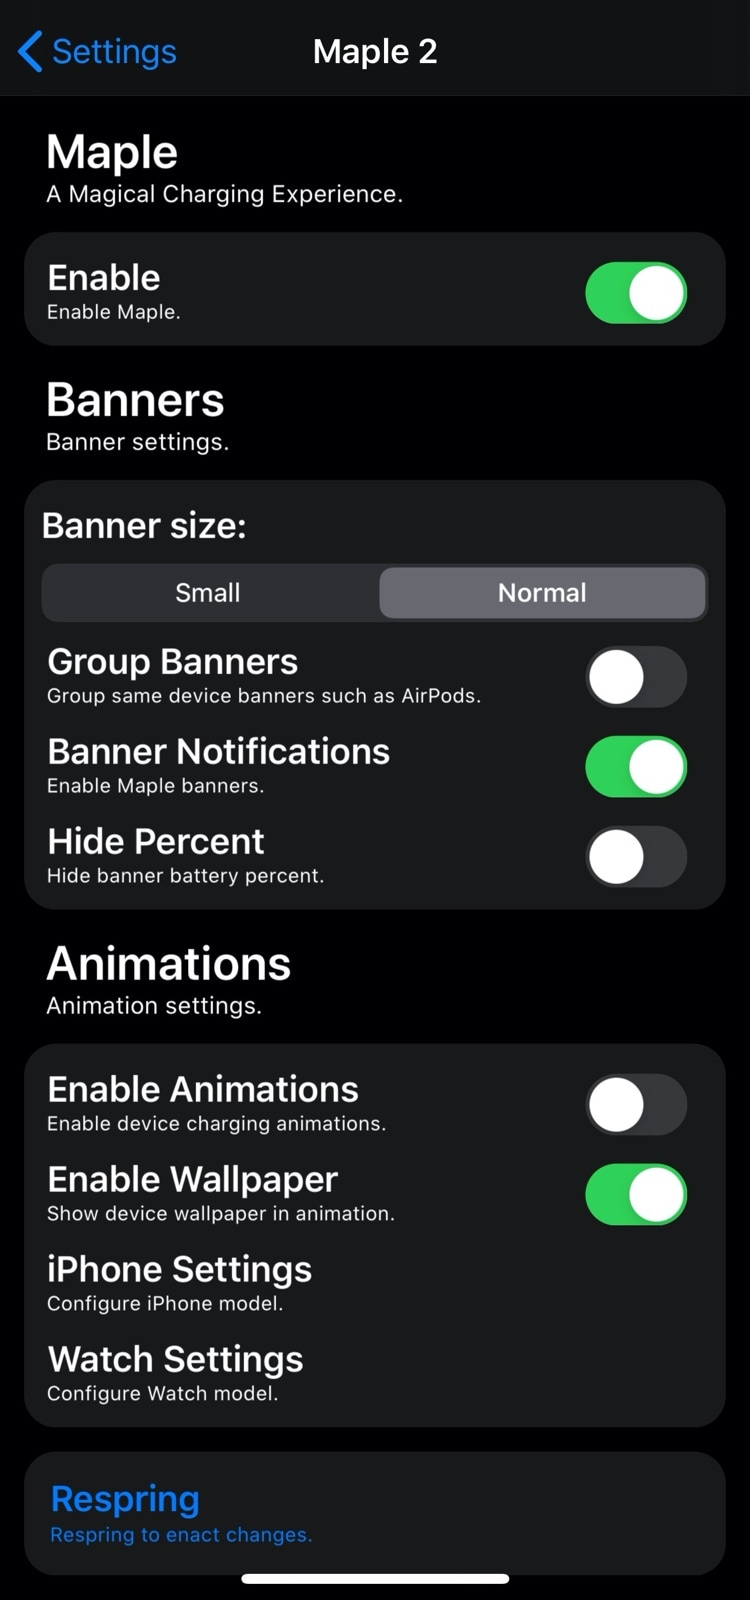 Maple 2 settings